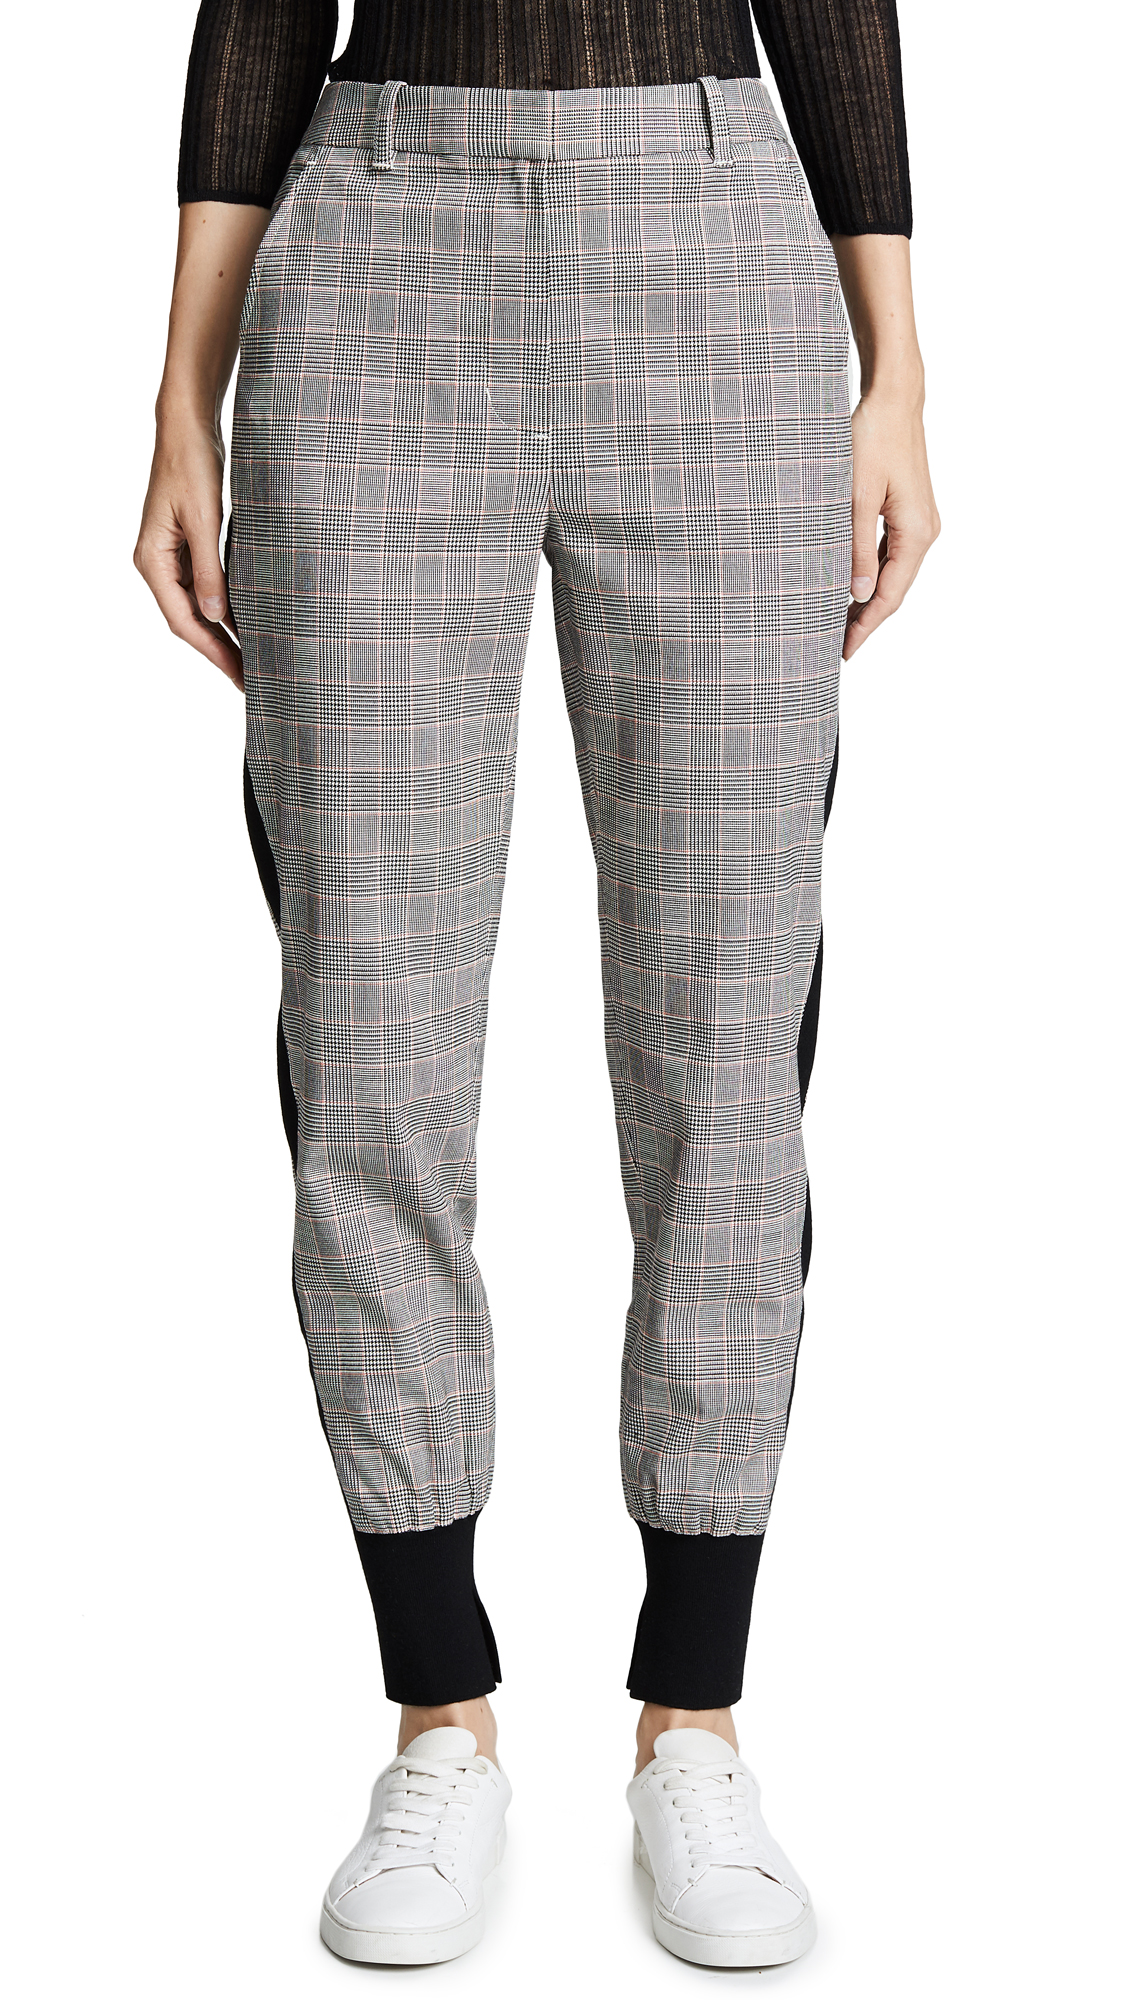 Ribbed Knit-Trimmed Checked Wool-Blend Track Pants, Black/White/Check